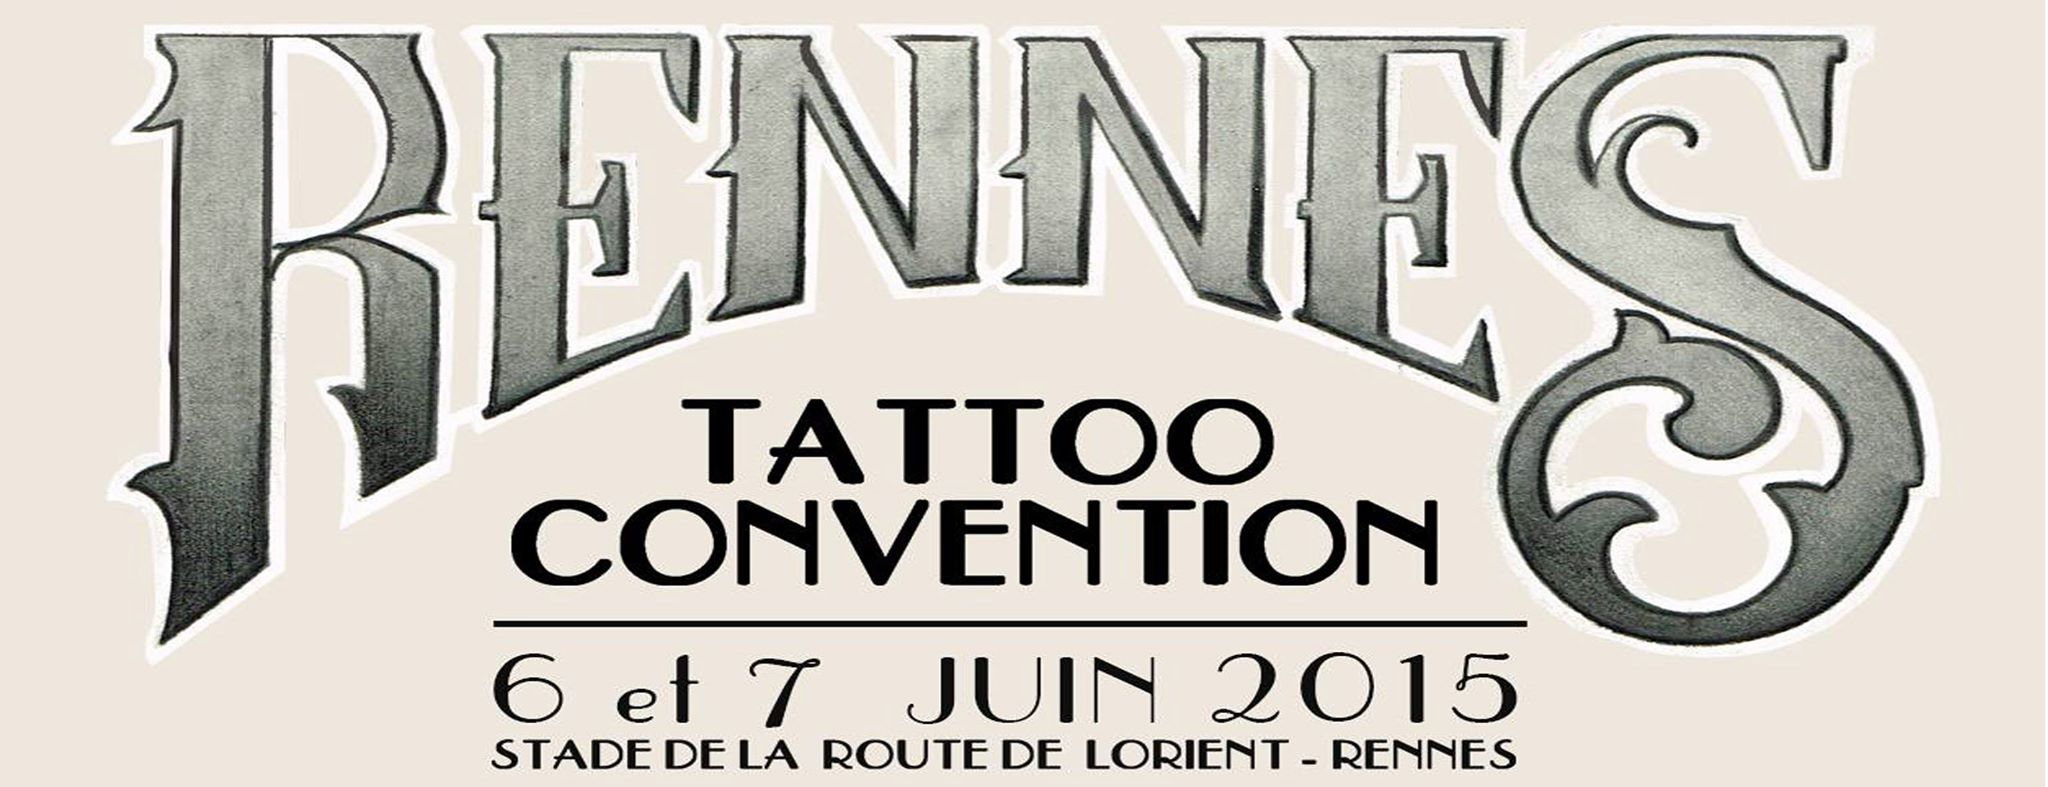 Rennes tattoo convention 2015